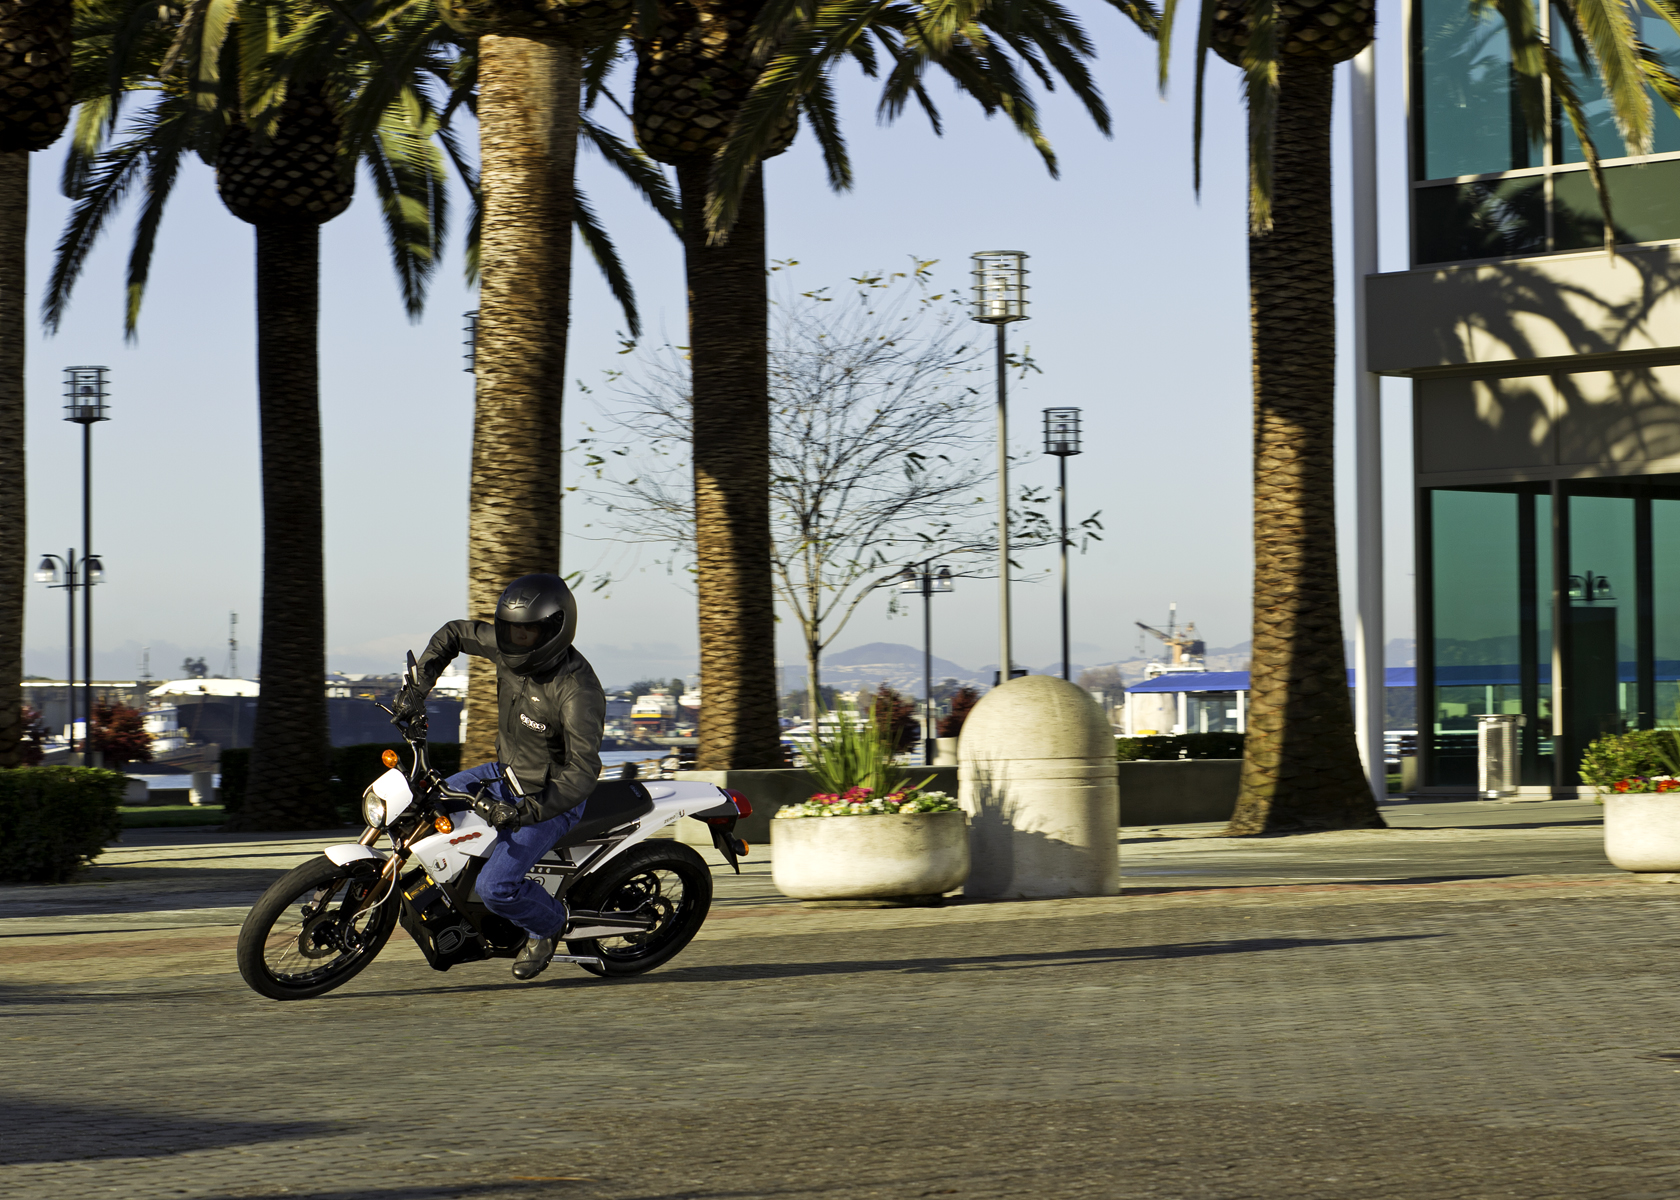 2011 Zero XU Electric Motorcycle: Lean Left, View of Palm Trees